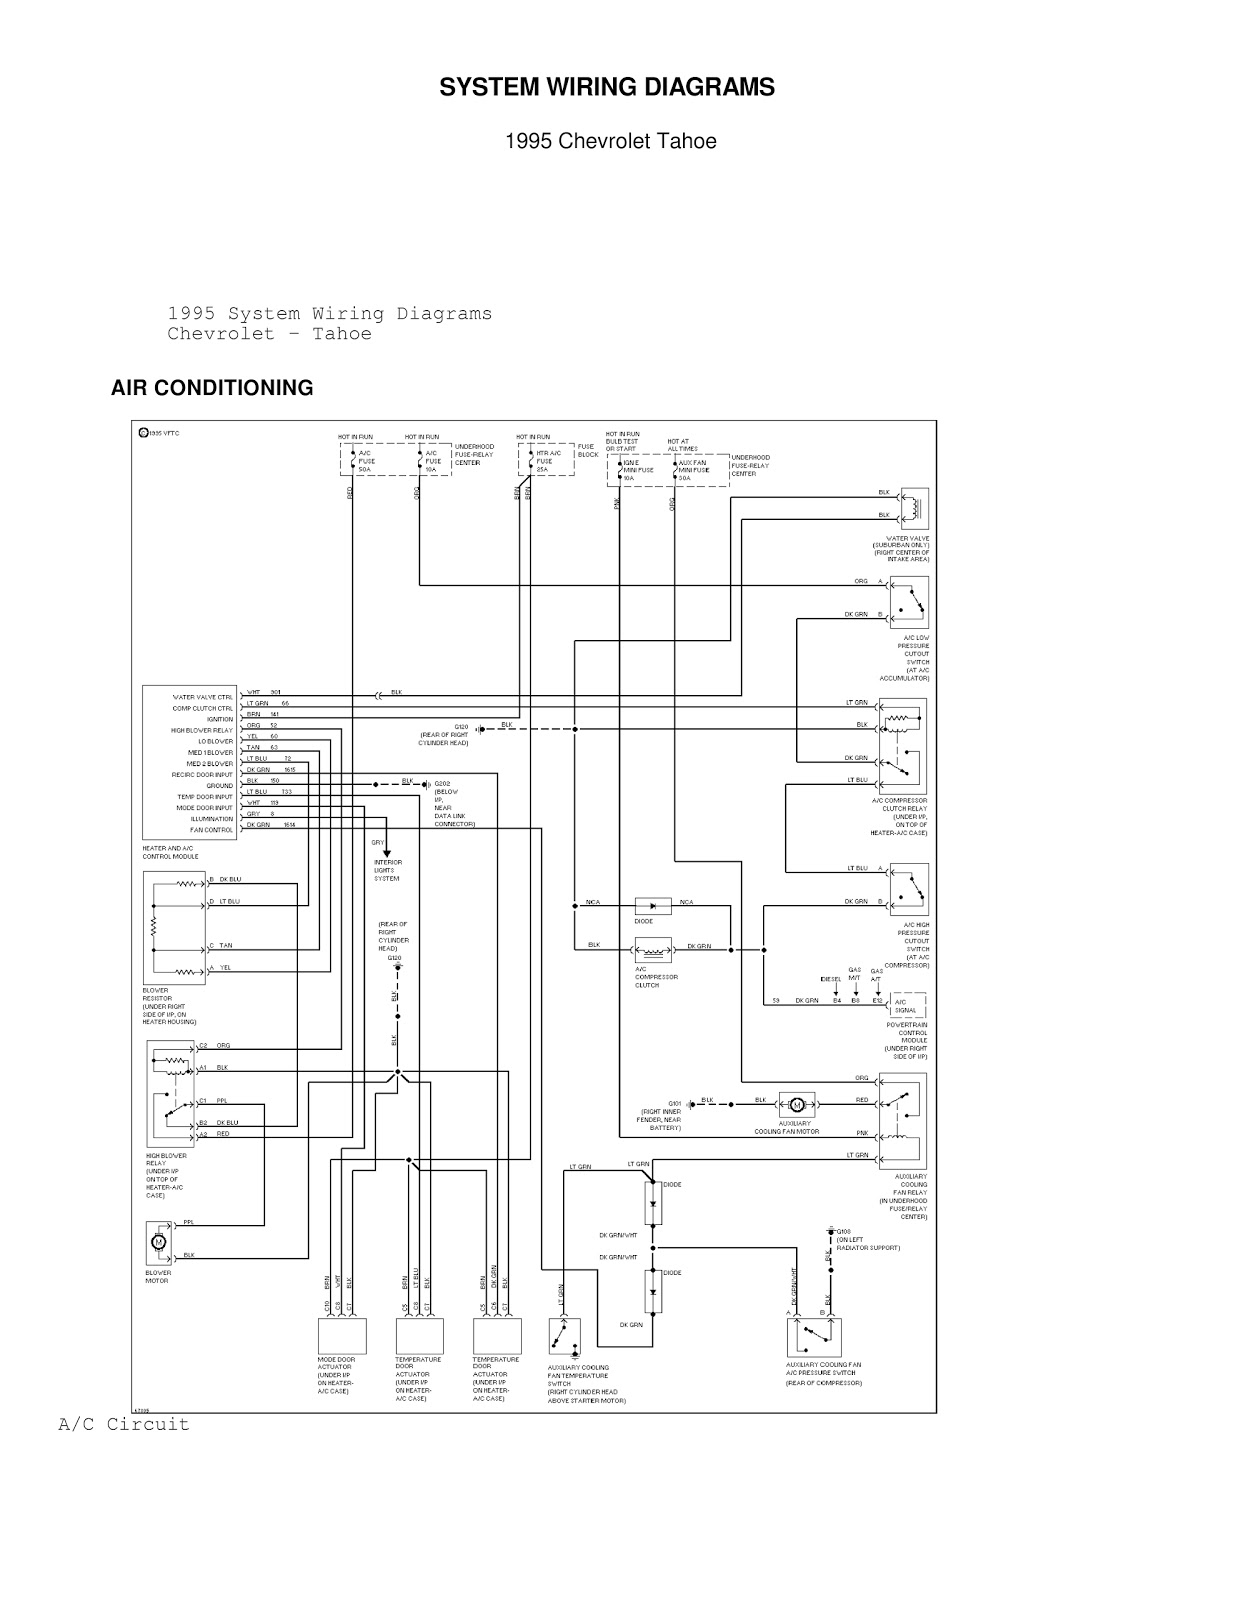 1995 Chevrolet Tahoe System Wiring Diagrams Air